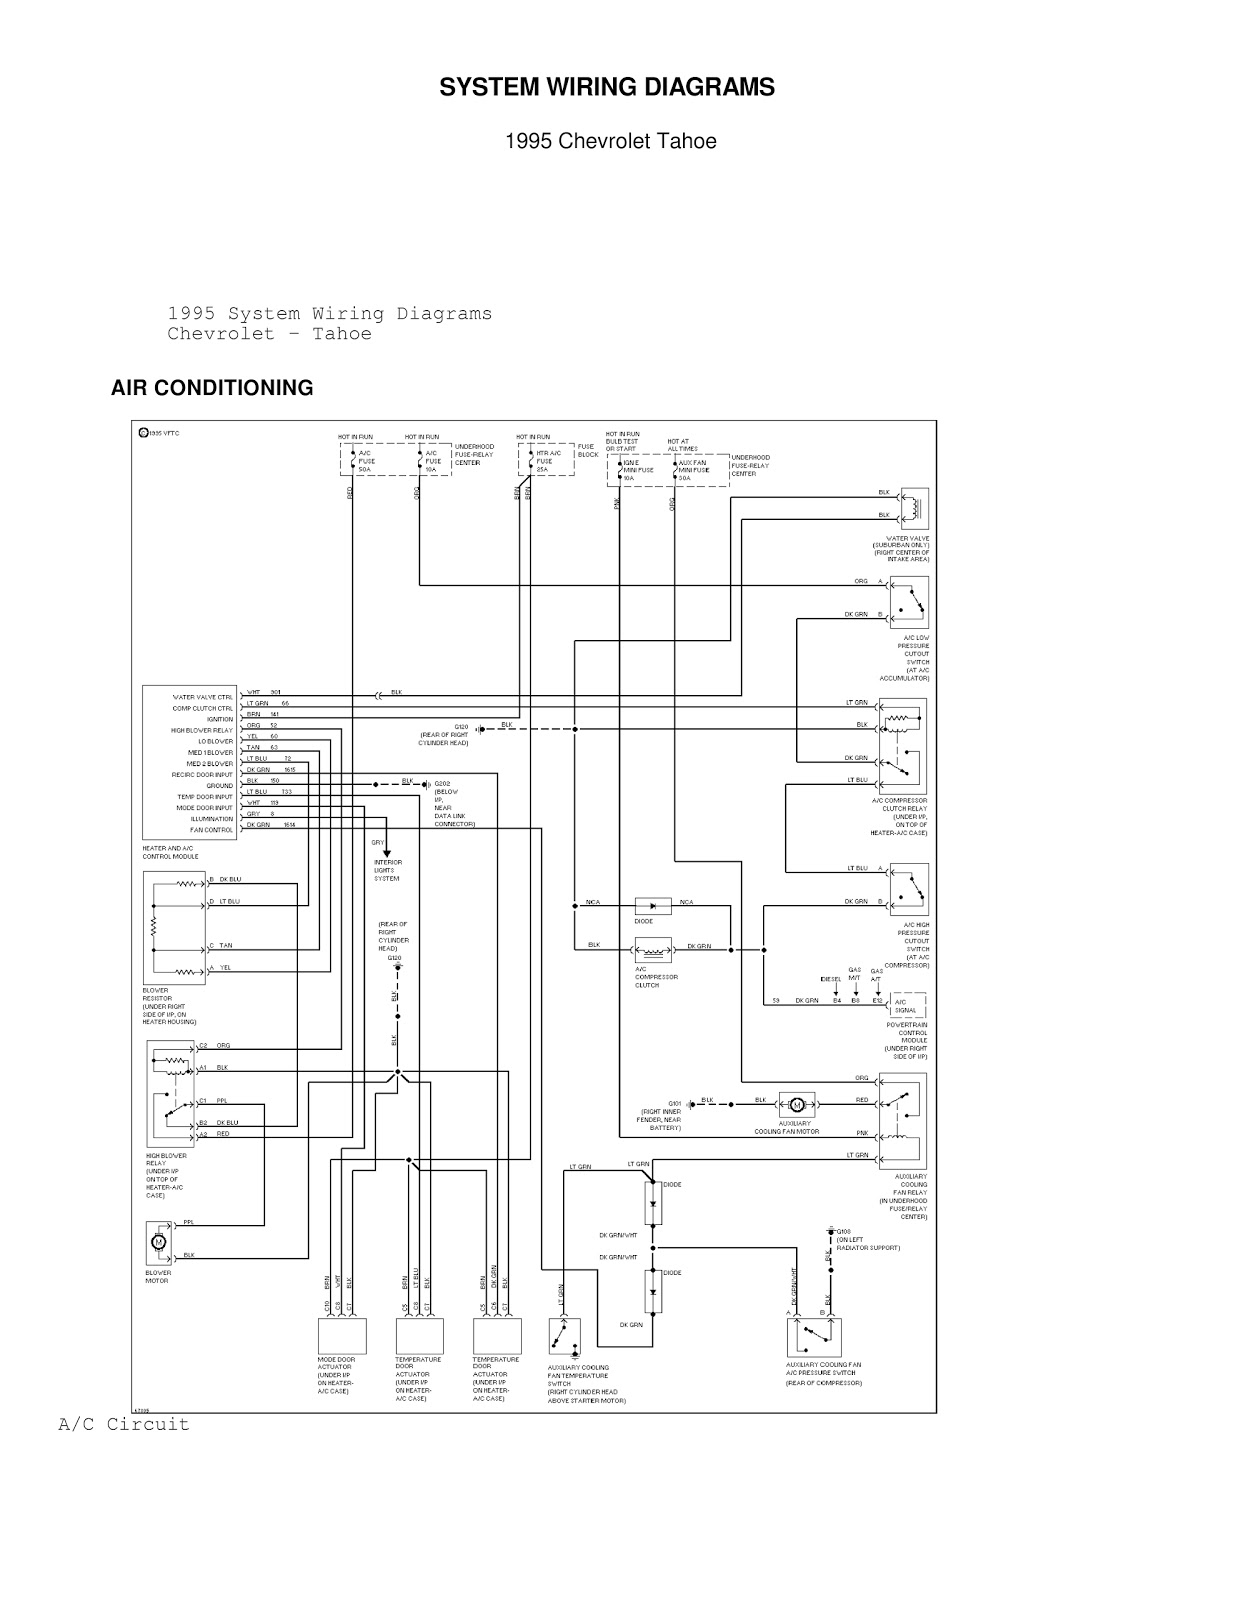 1995 Chevrolet Tahoe System Wiring Diagrams Air